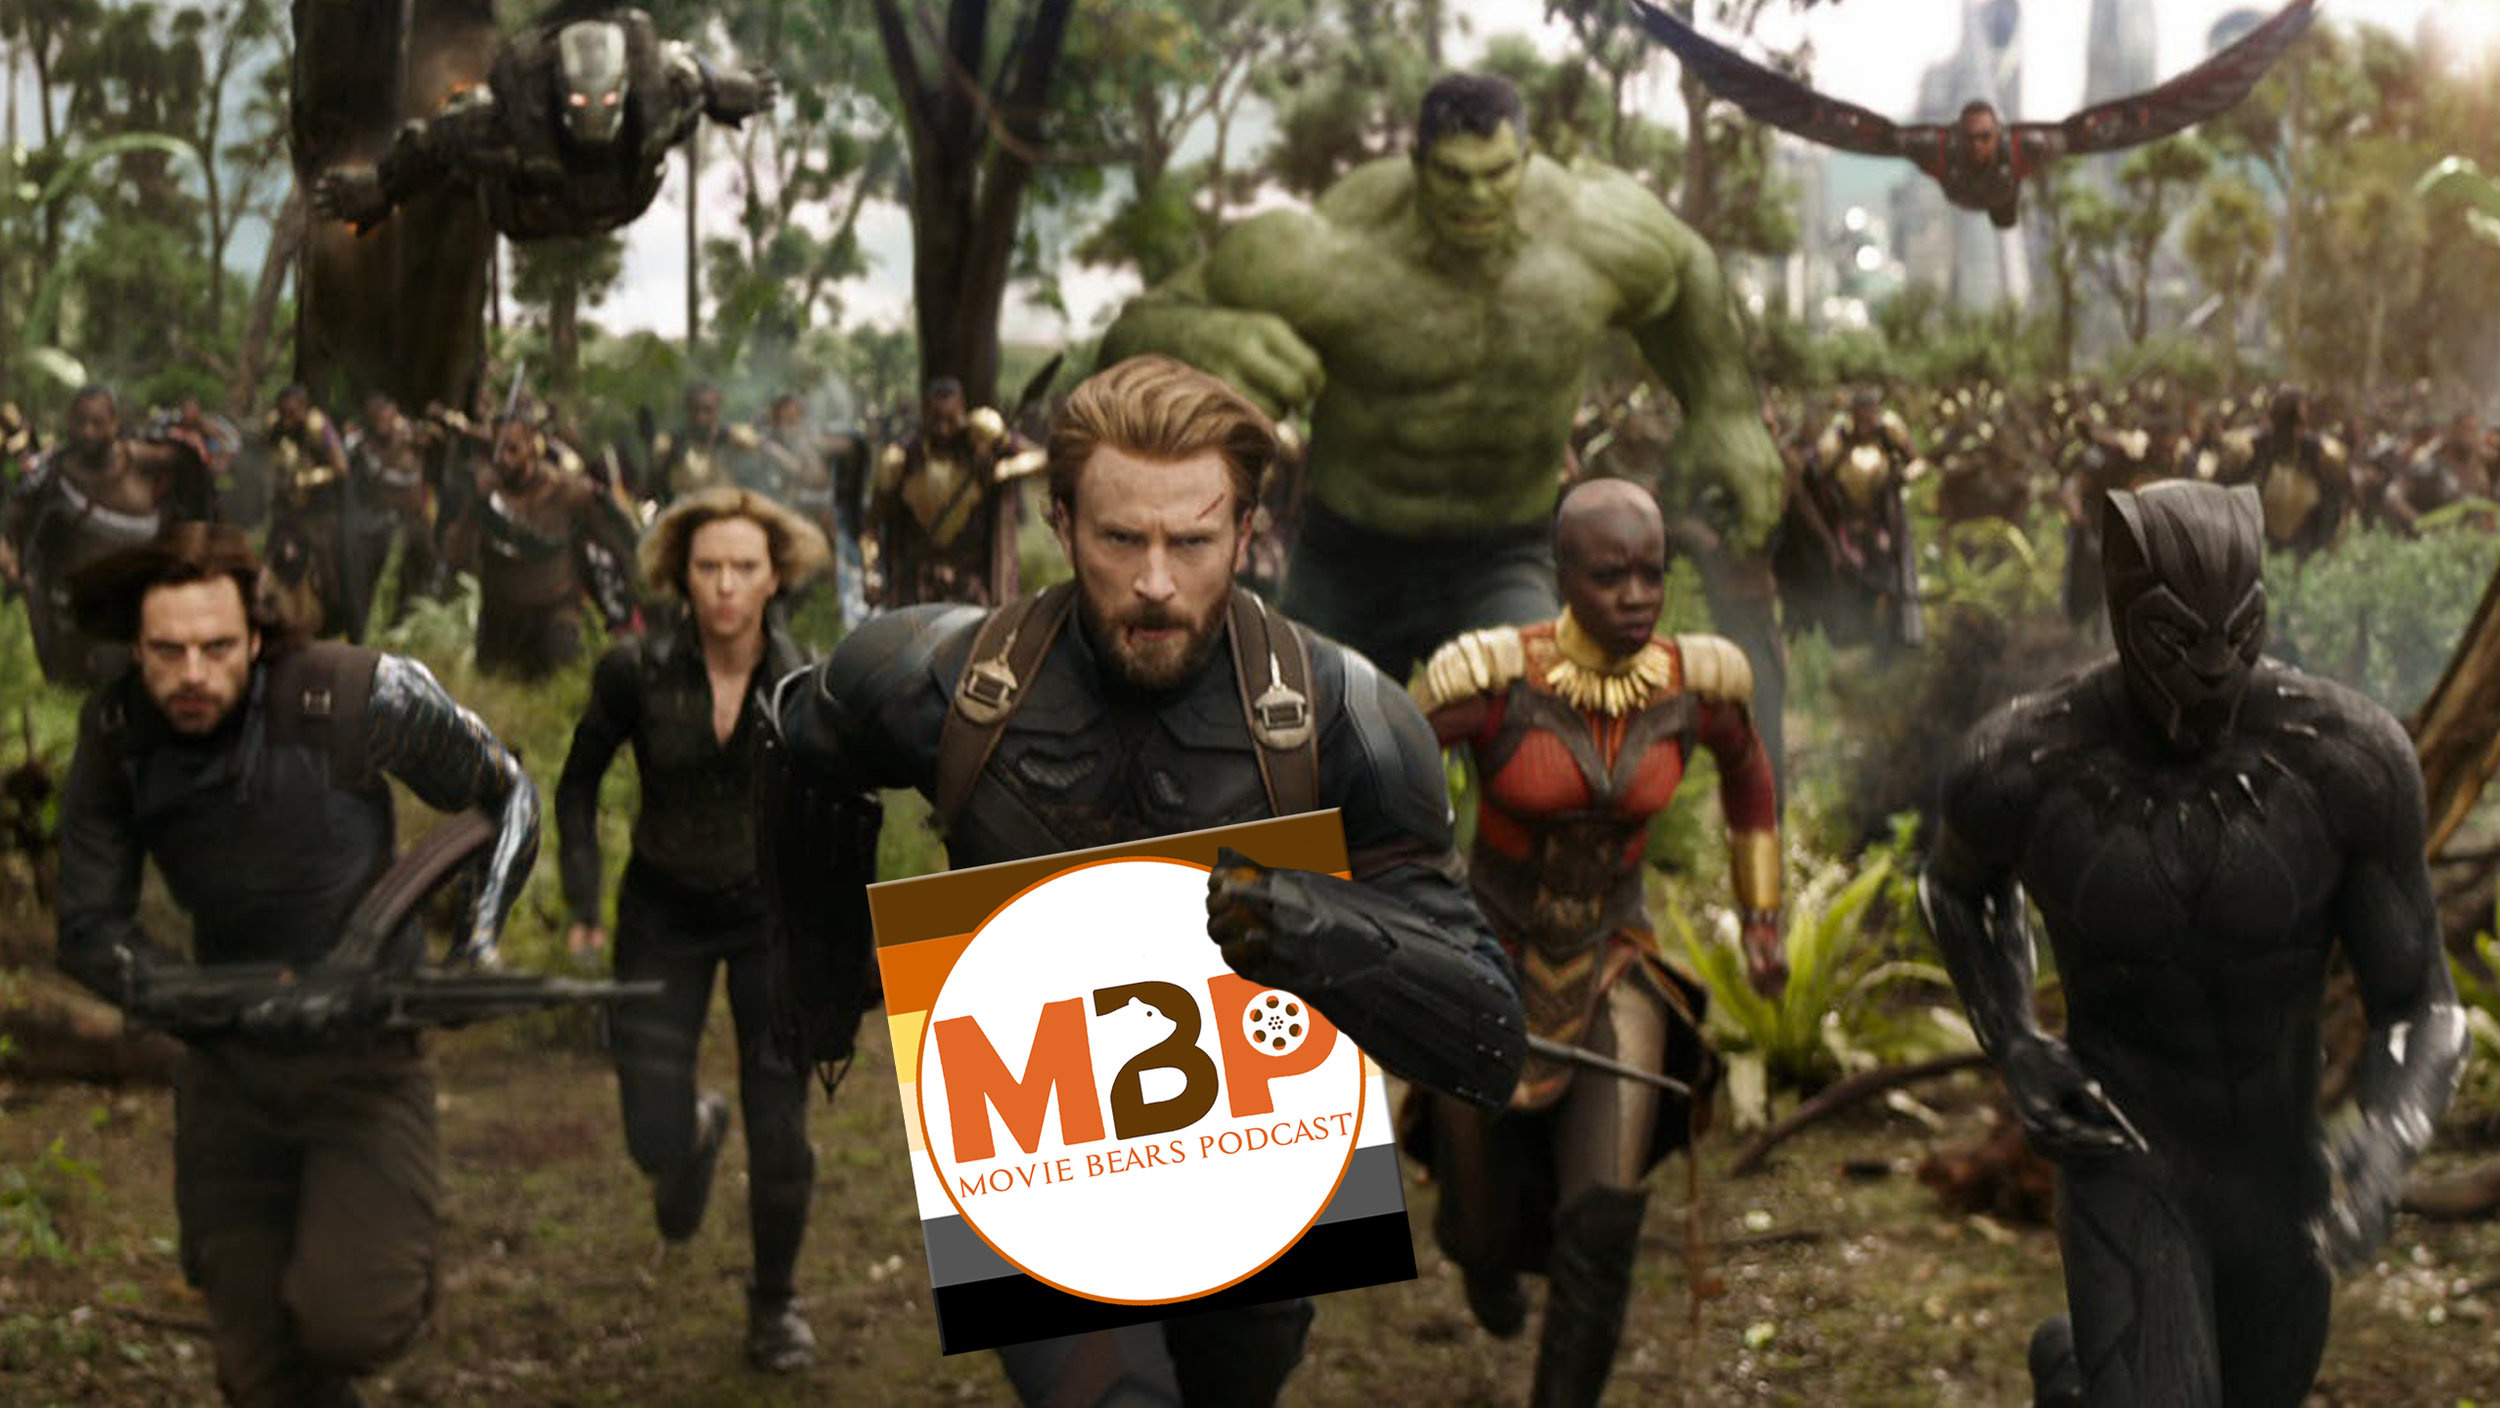 MBP e280 - 'Avengers: Infinity War' (4/30/18)    18 films over 10 years have been building up to this... the mega-crossover event 'Avengers: Infinity War' pits all of your favorite MCU heroes against a threat the likes they have never seen. Will they stand victorious? Join us for our review (both spoiler-free then diving into spoilers after a warning) to find out of this film was as big a hit with us as it was at the box office.